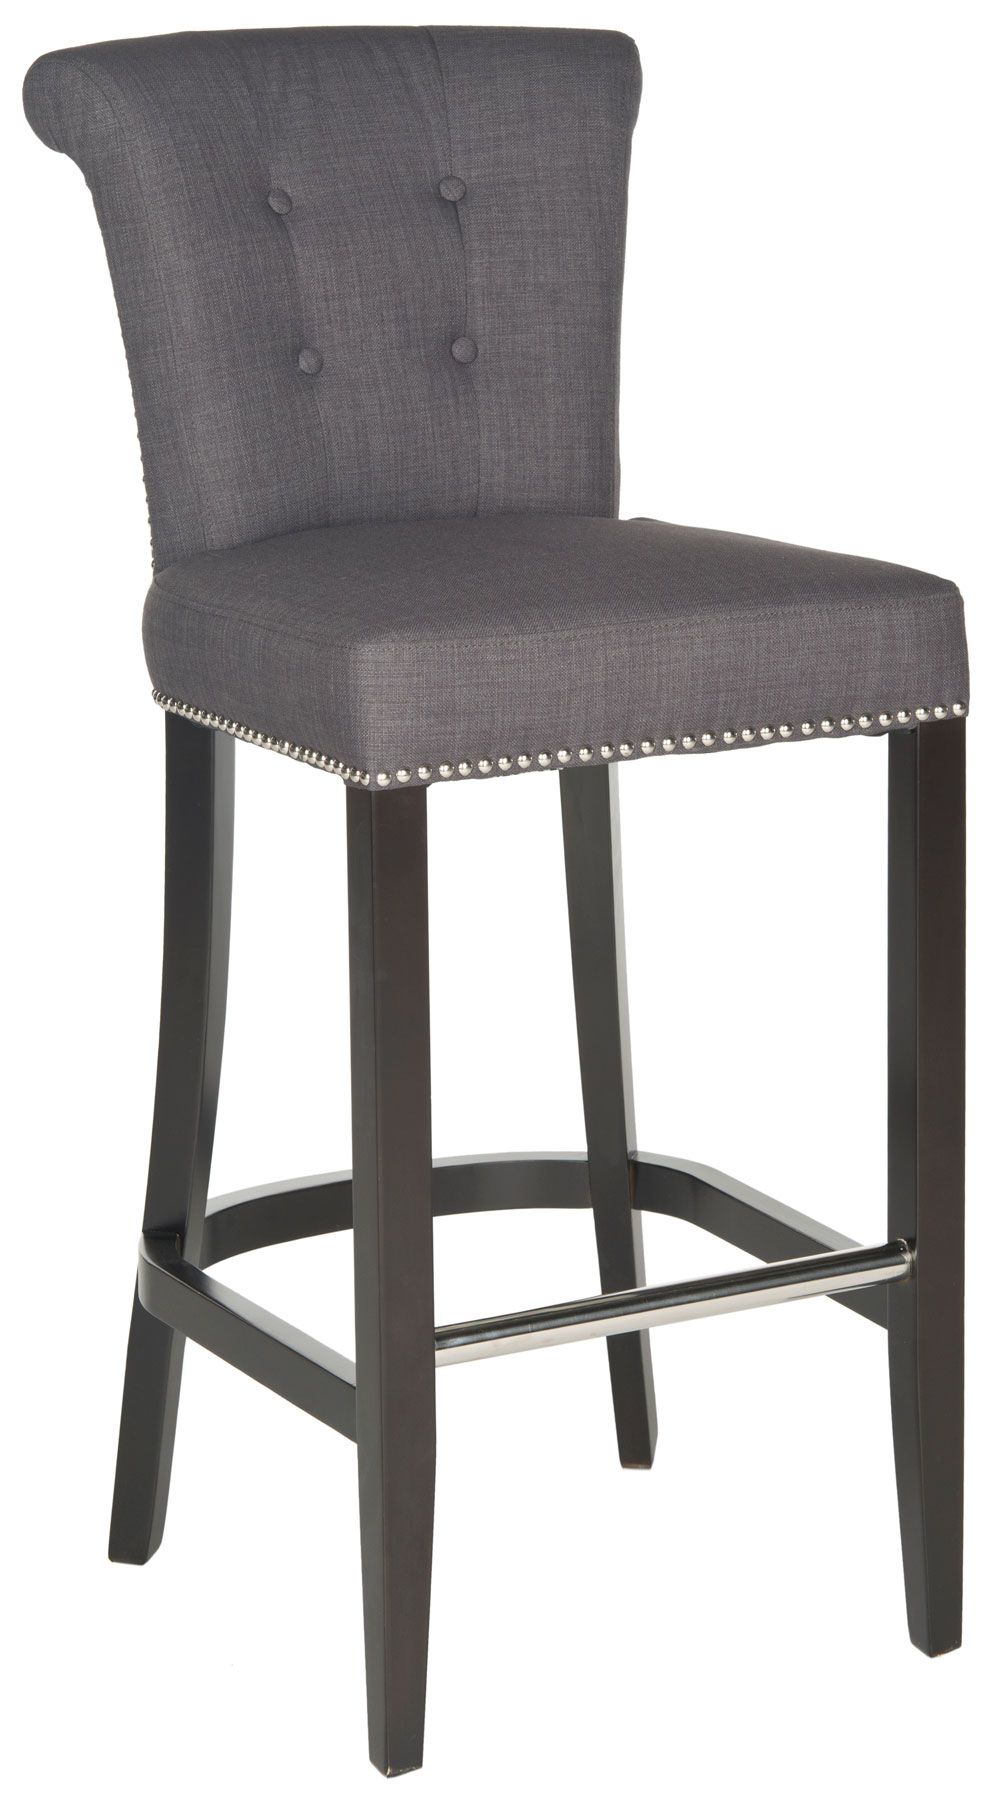 dressed up with silver nail heads foot rest and a clever metal ring on its back the addo ring bar stool is shown in charcoal linenweave poly fabric with